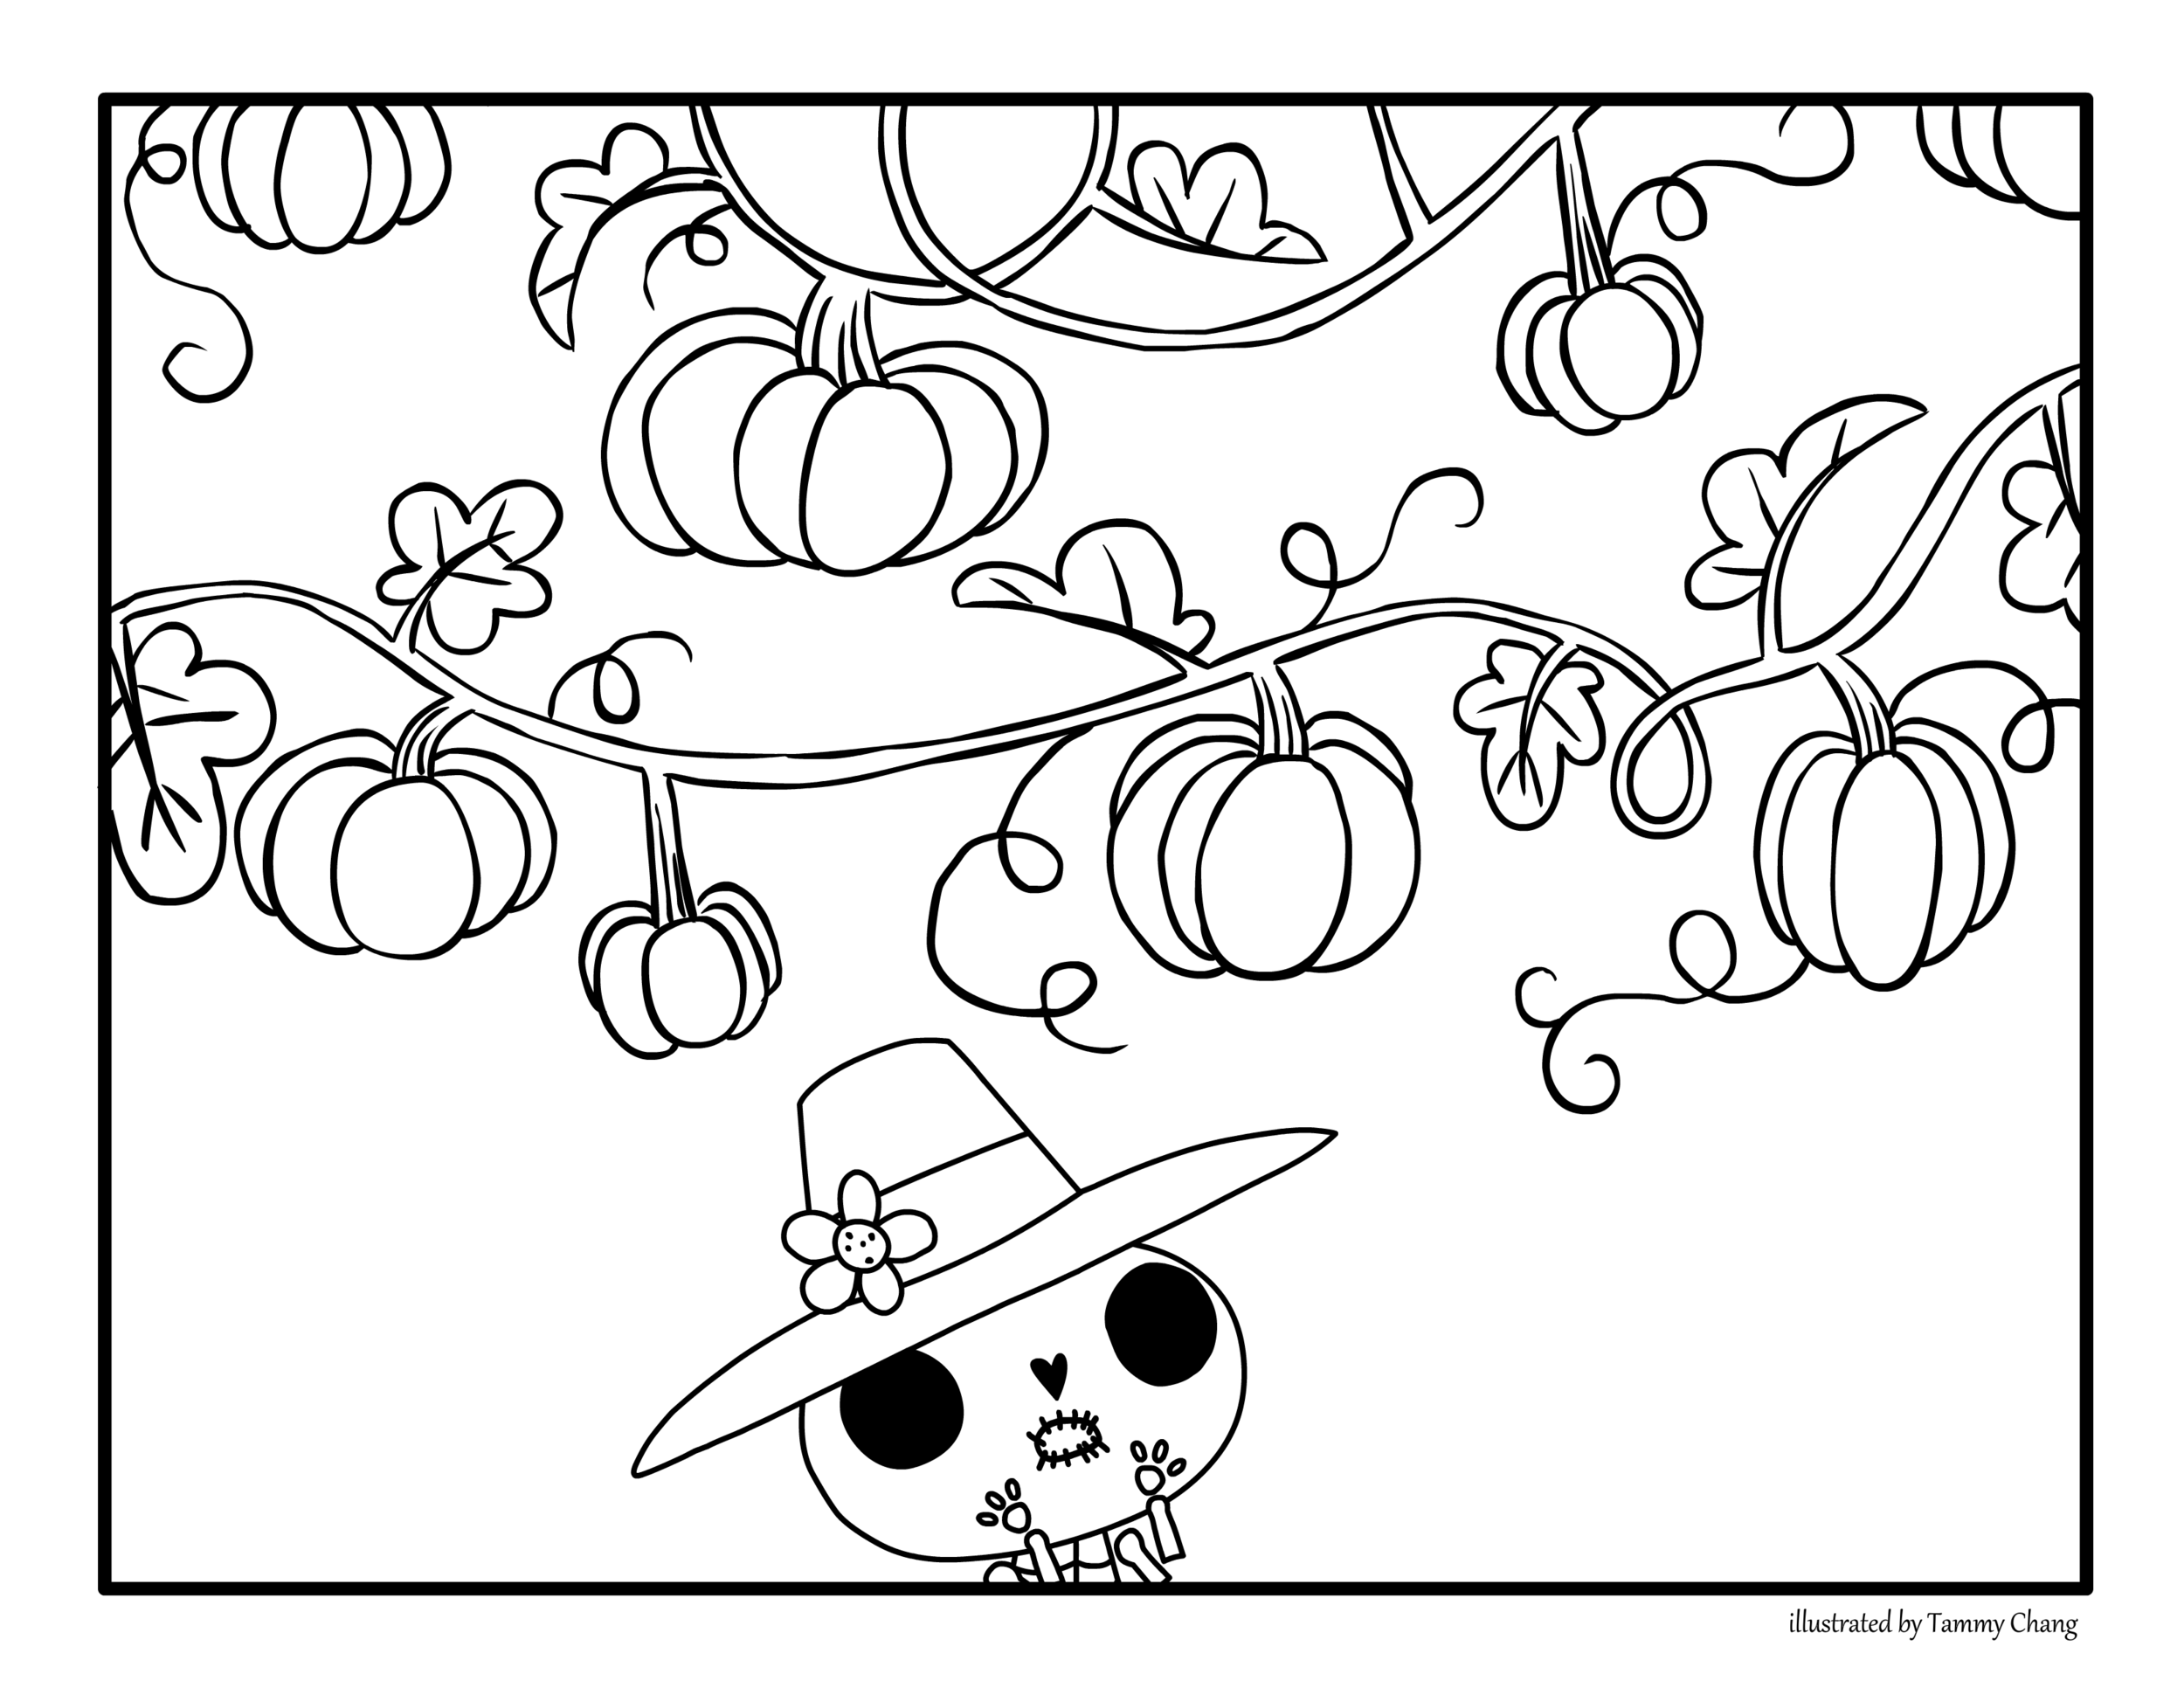 coloring_Page_03.png